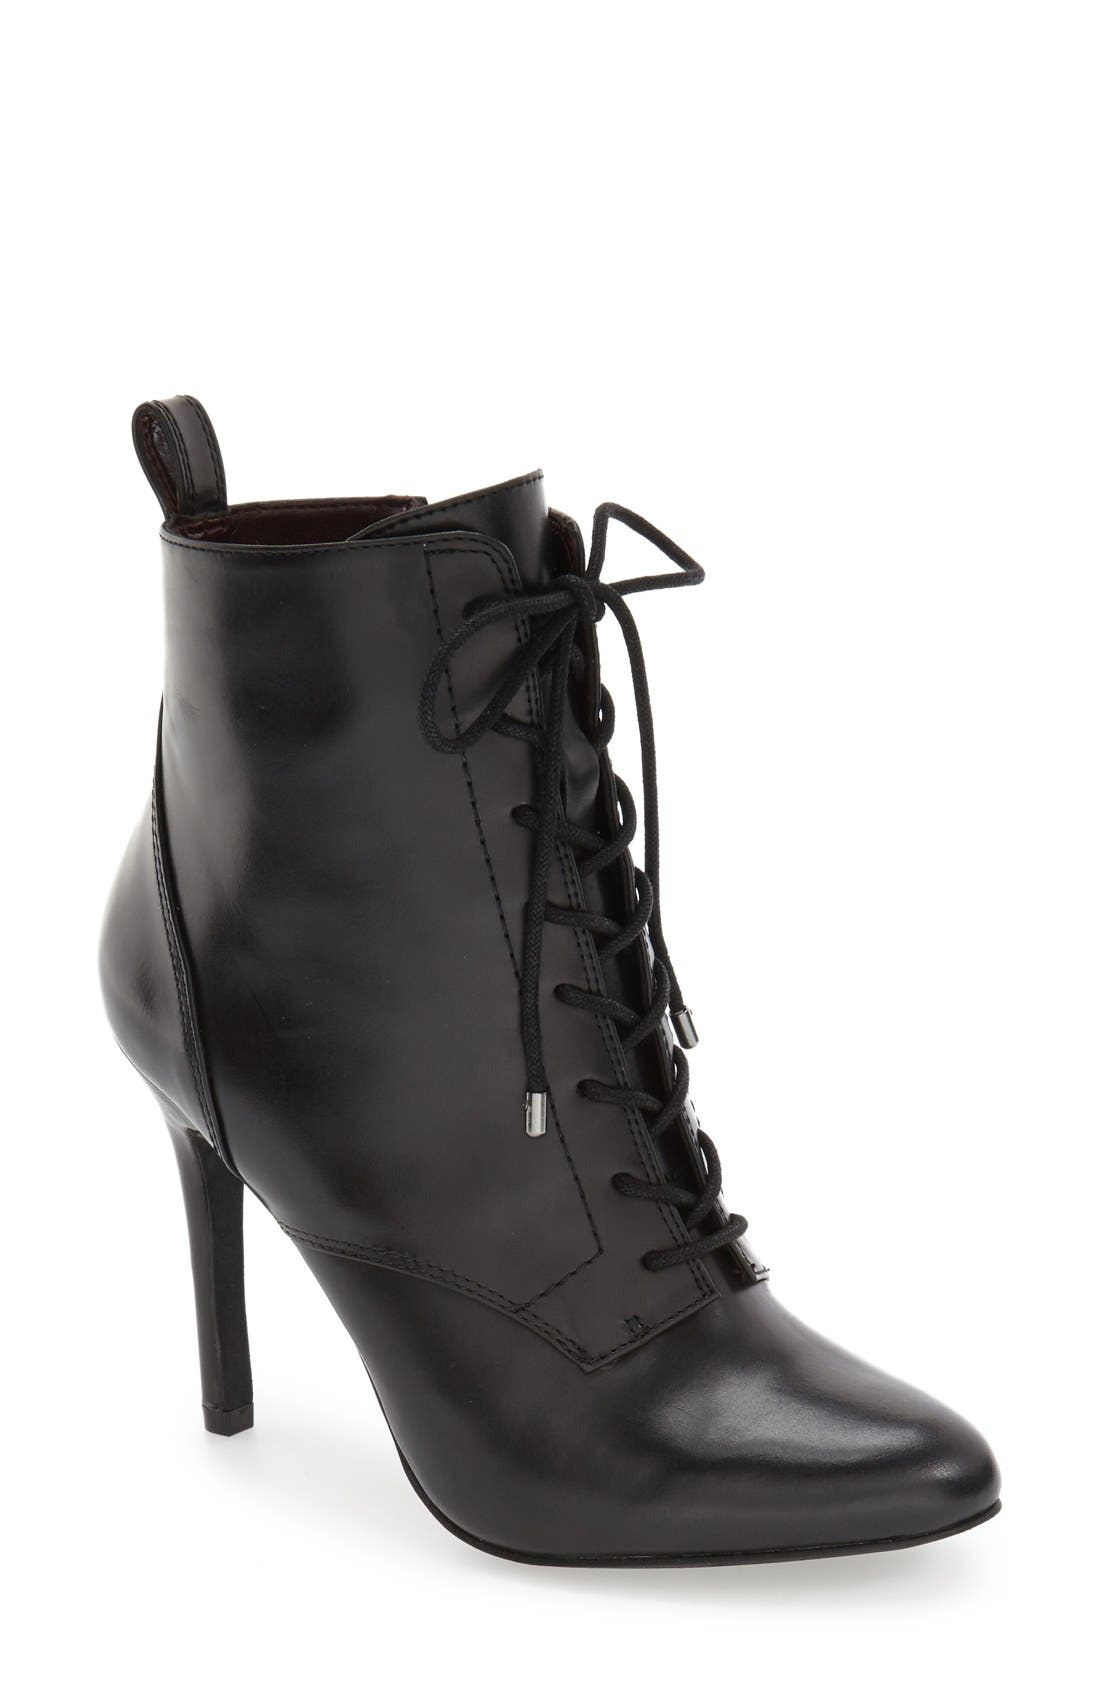 Alternate Image 1 Selected - BCBGeneration 'Banx' Lace-Up Bootie (Women)